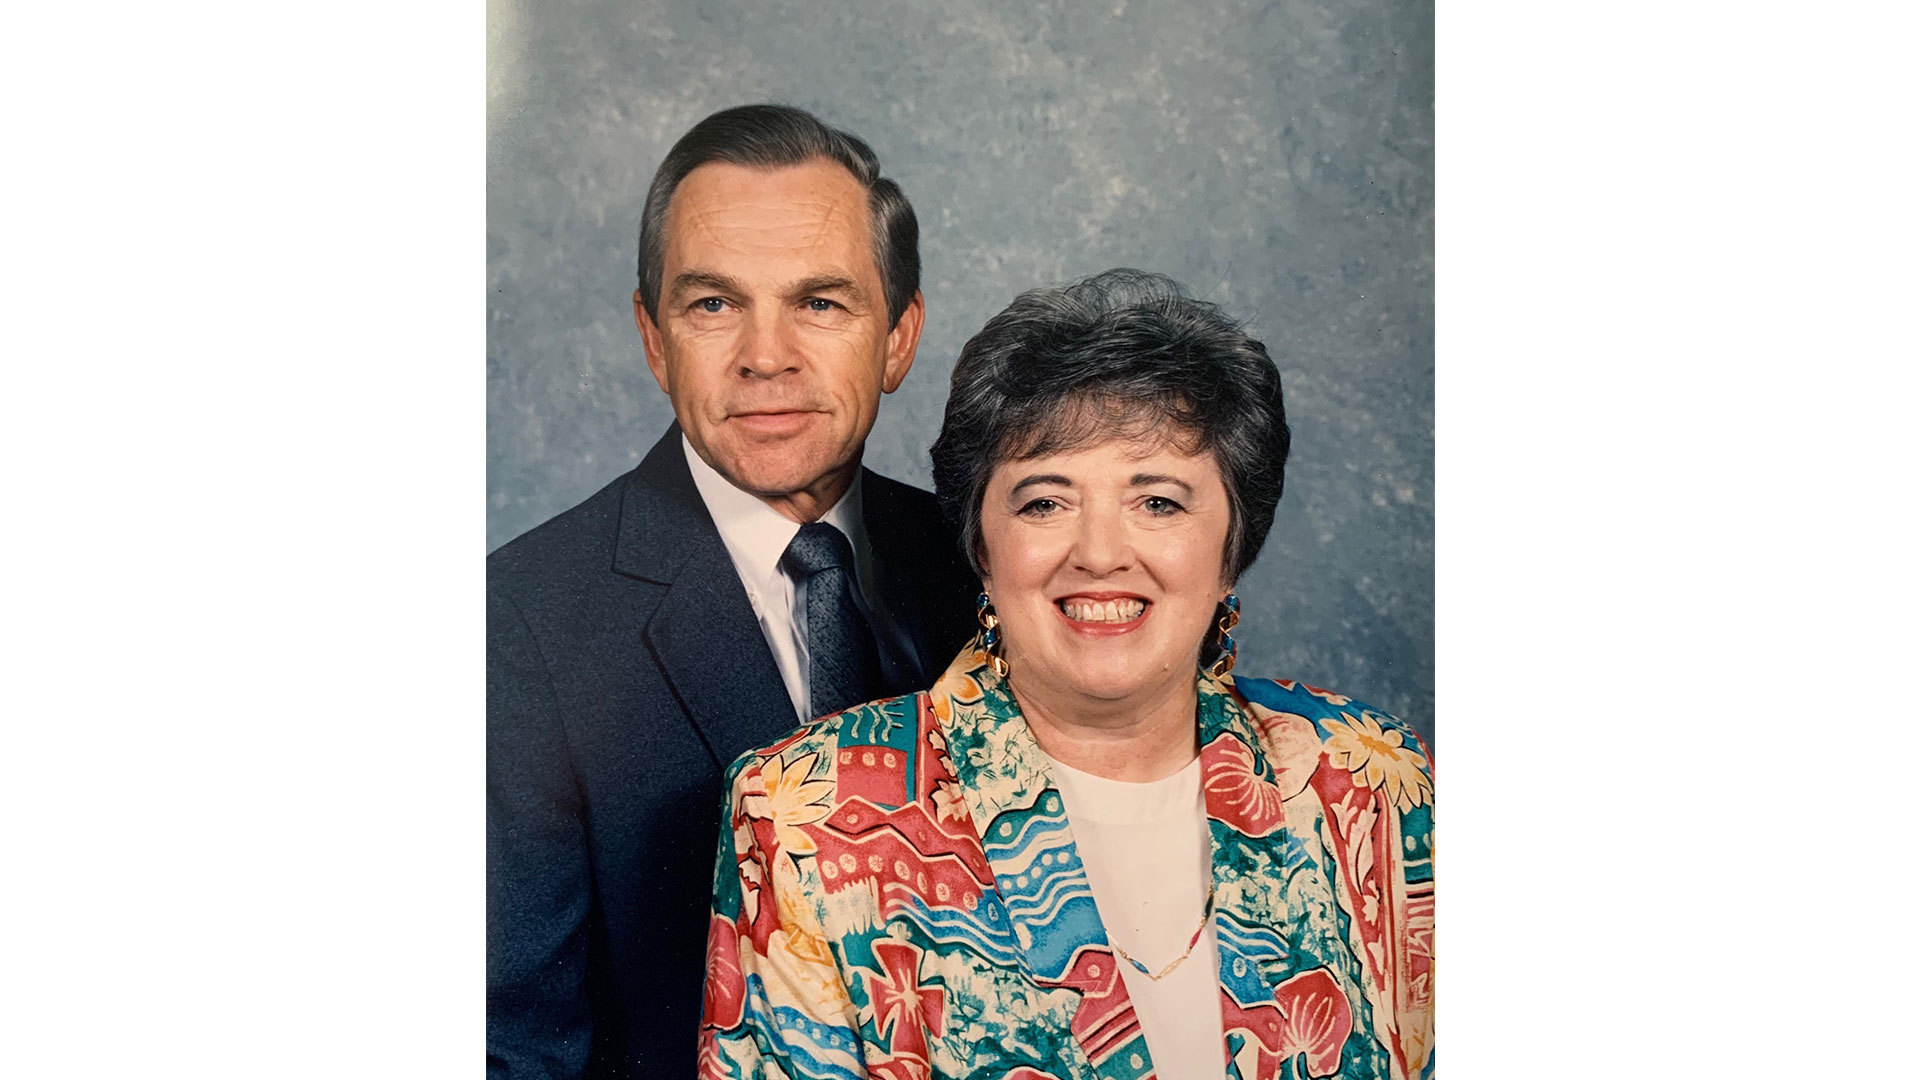 James and Donna Eaton